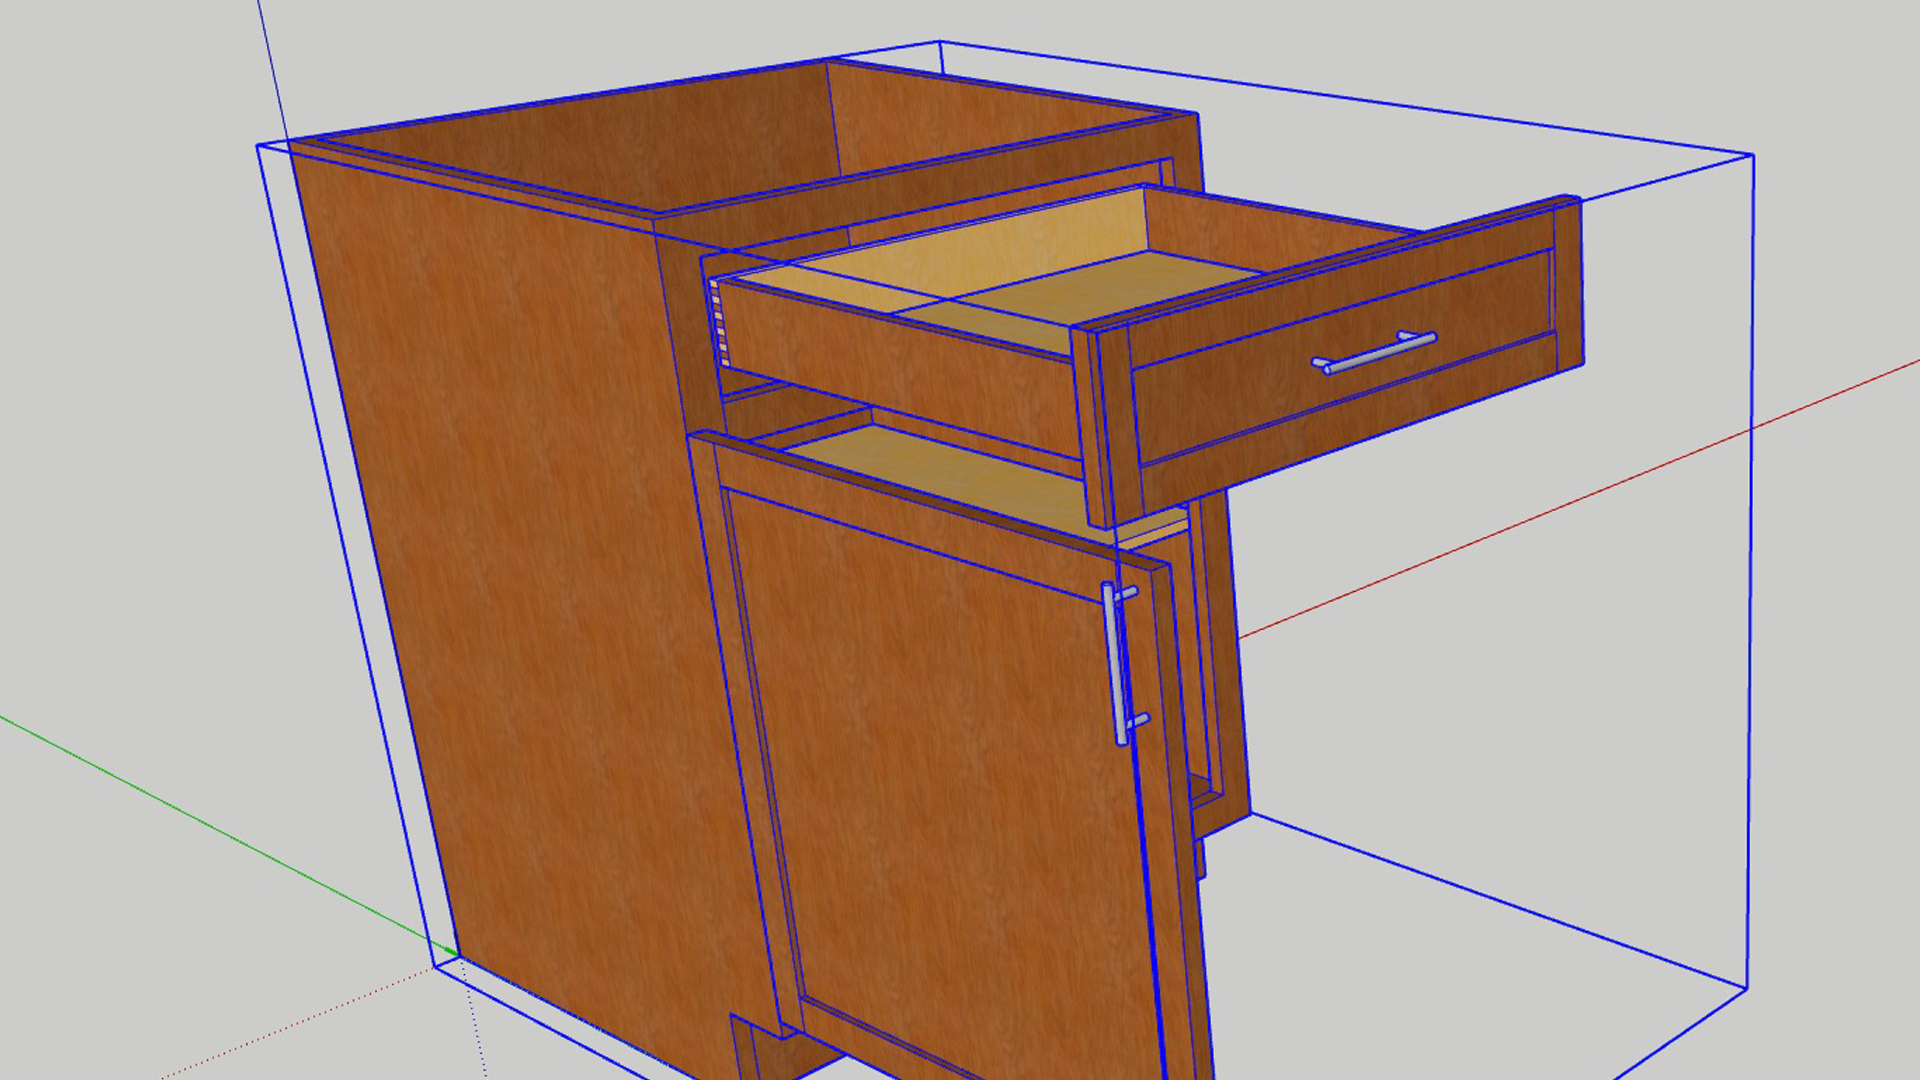 SketchUp Pro: Dynamic Components